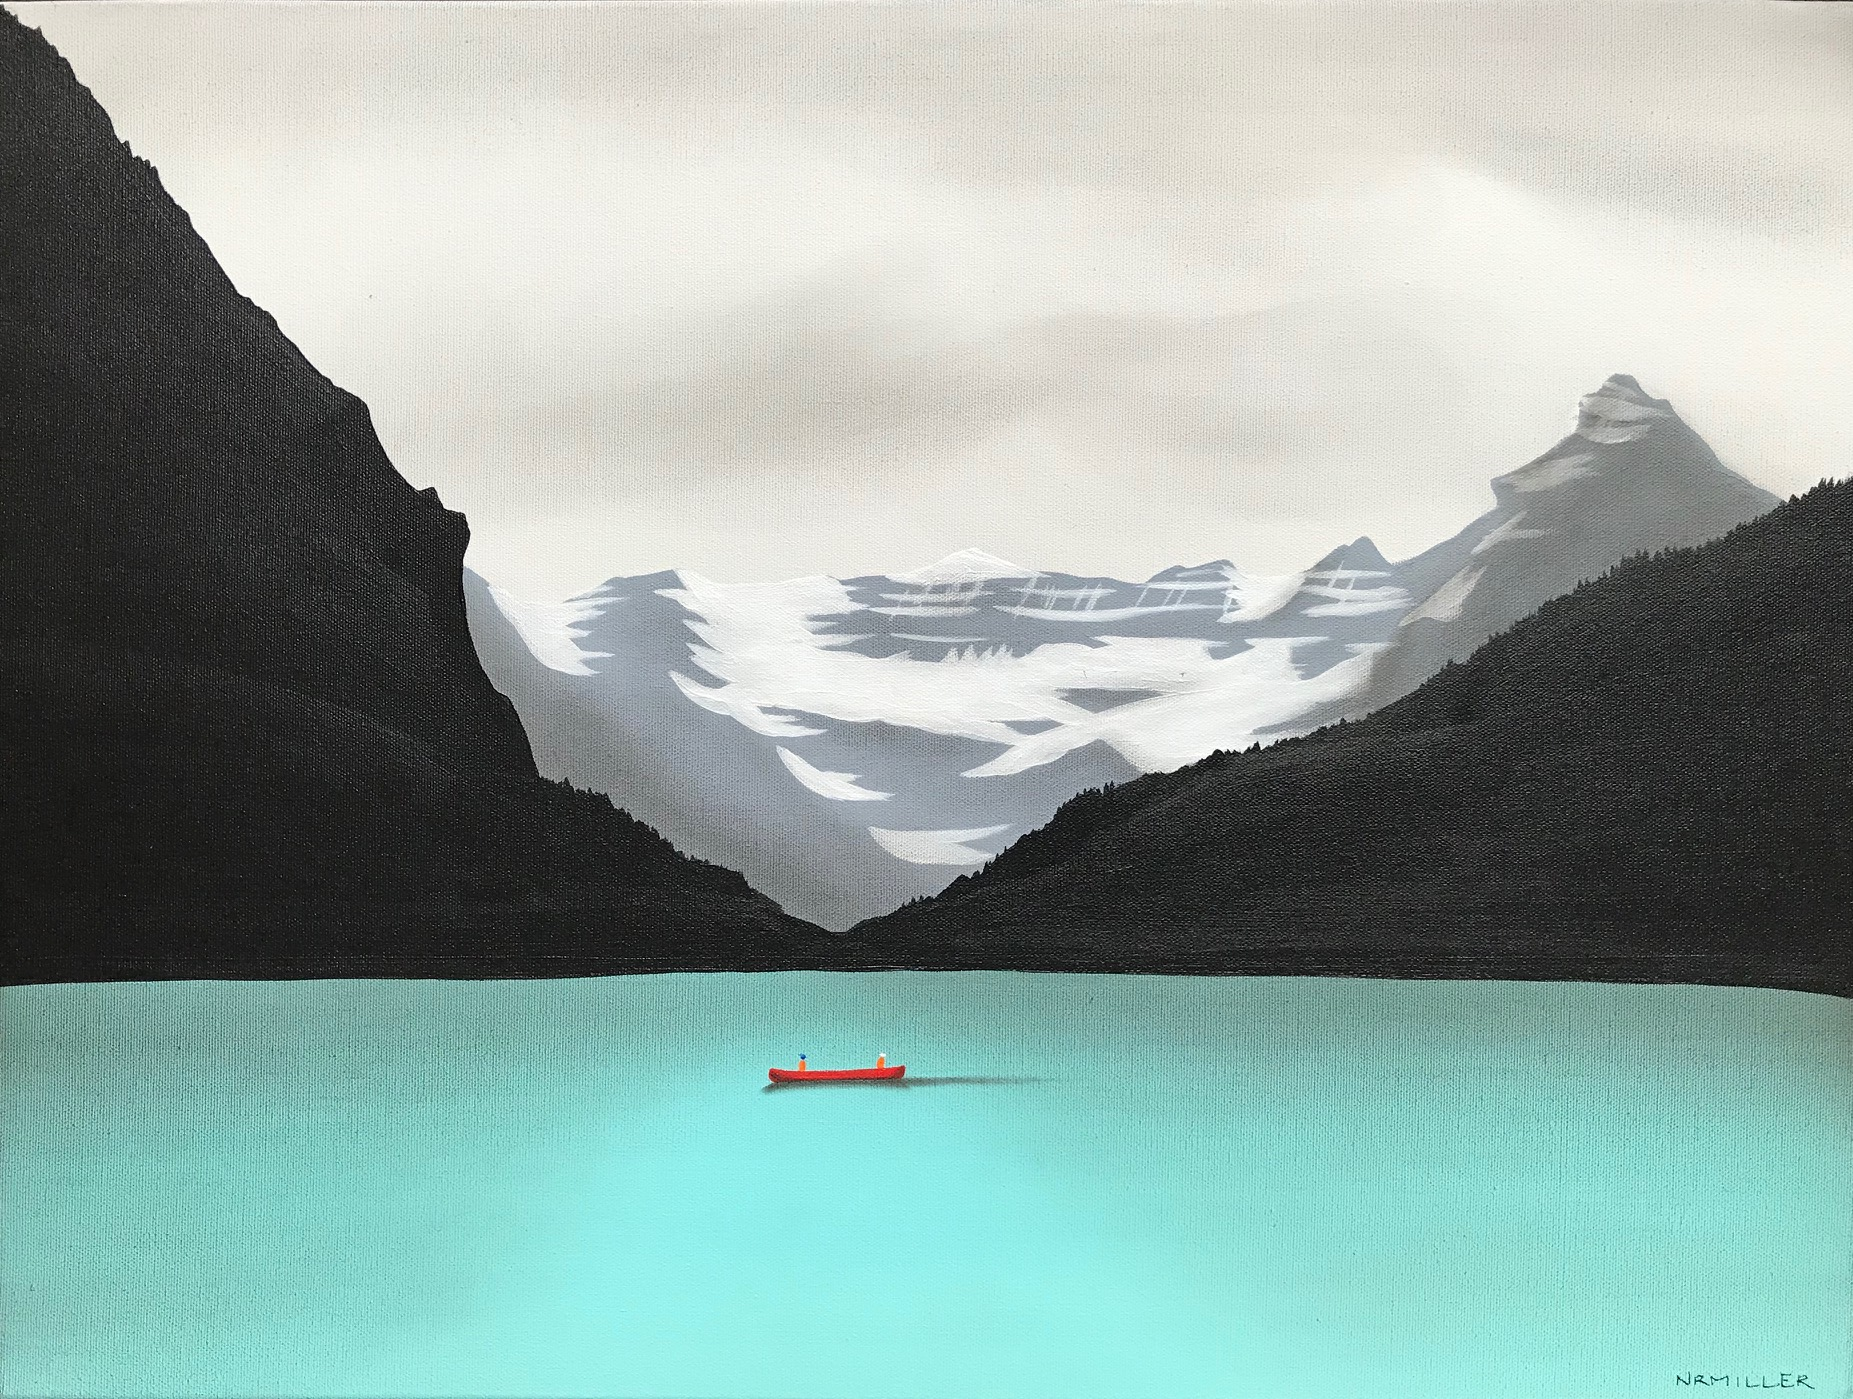 Lasting Impressions, mixed media Lake Louise painting by Natasha Miller | Effusion Art Gallery + Cast Glass Studio, Invermere BC